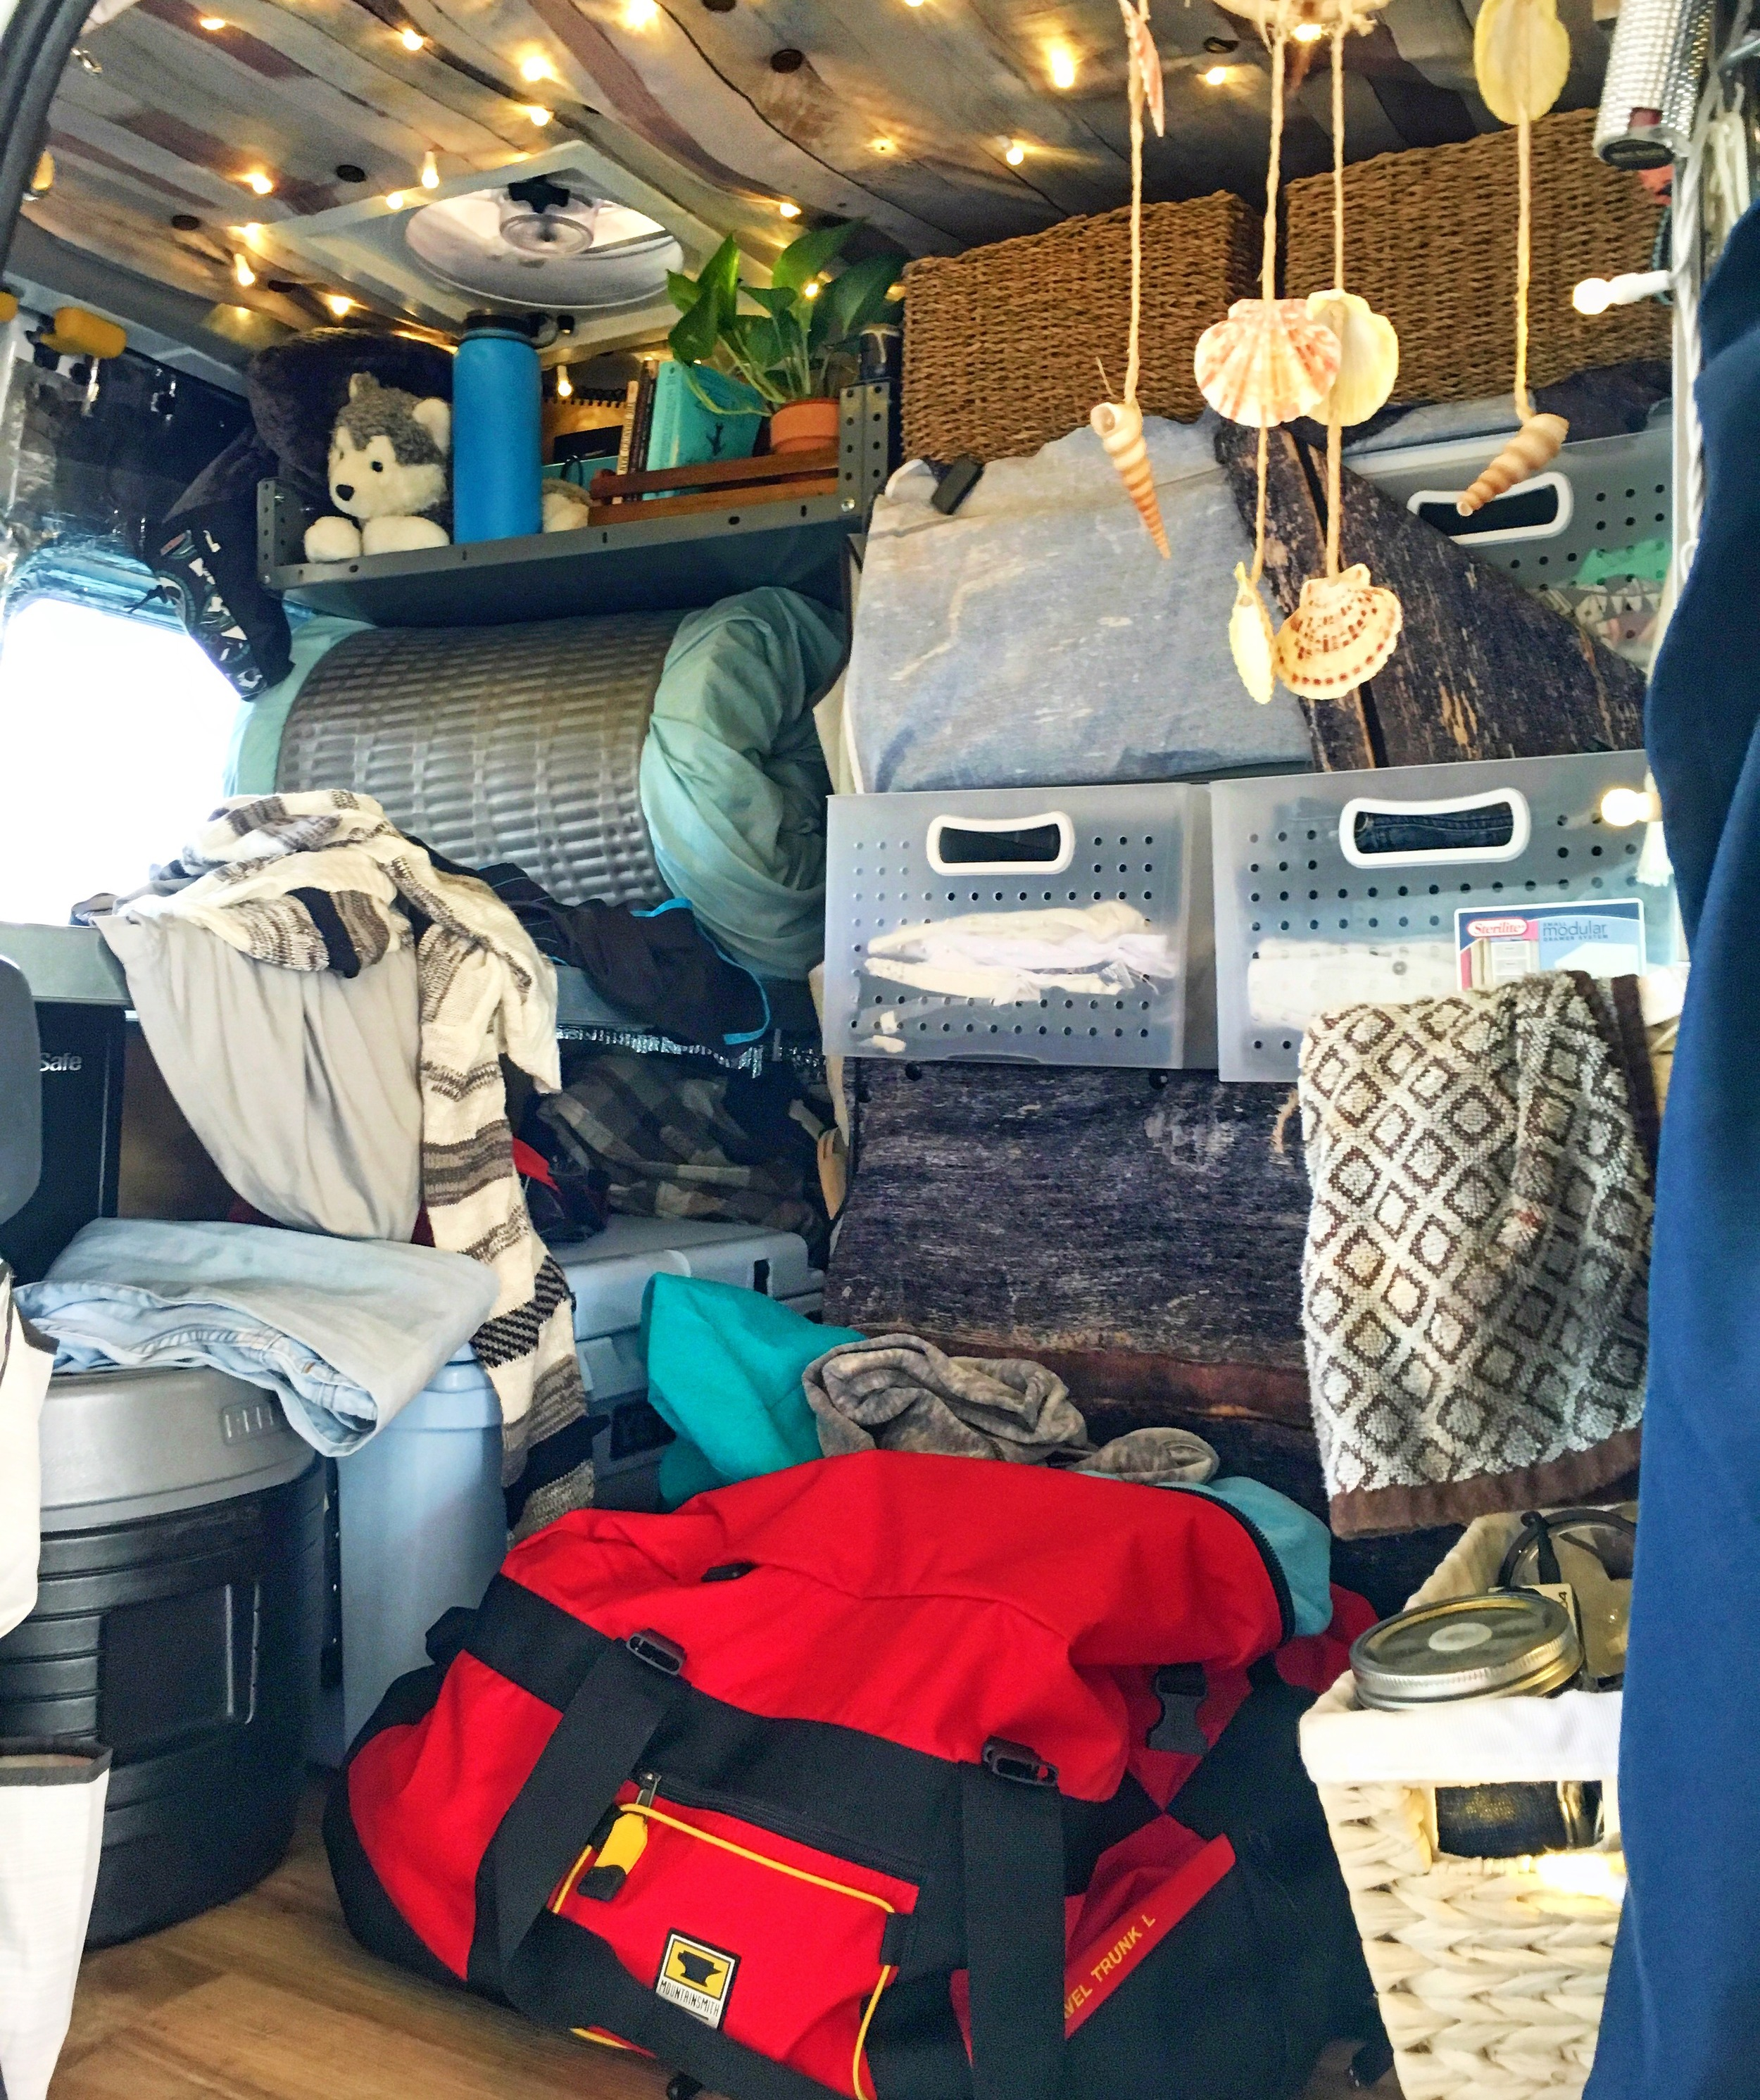 It wasn't always so organized in here, though... I used the  Mountainsmith Travel Trunk  to carry my entire wardrobe to the van in one trip when I was moving in.